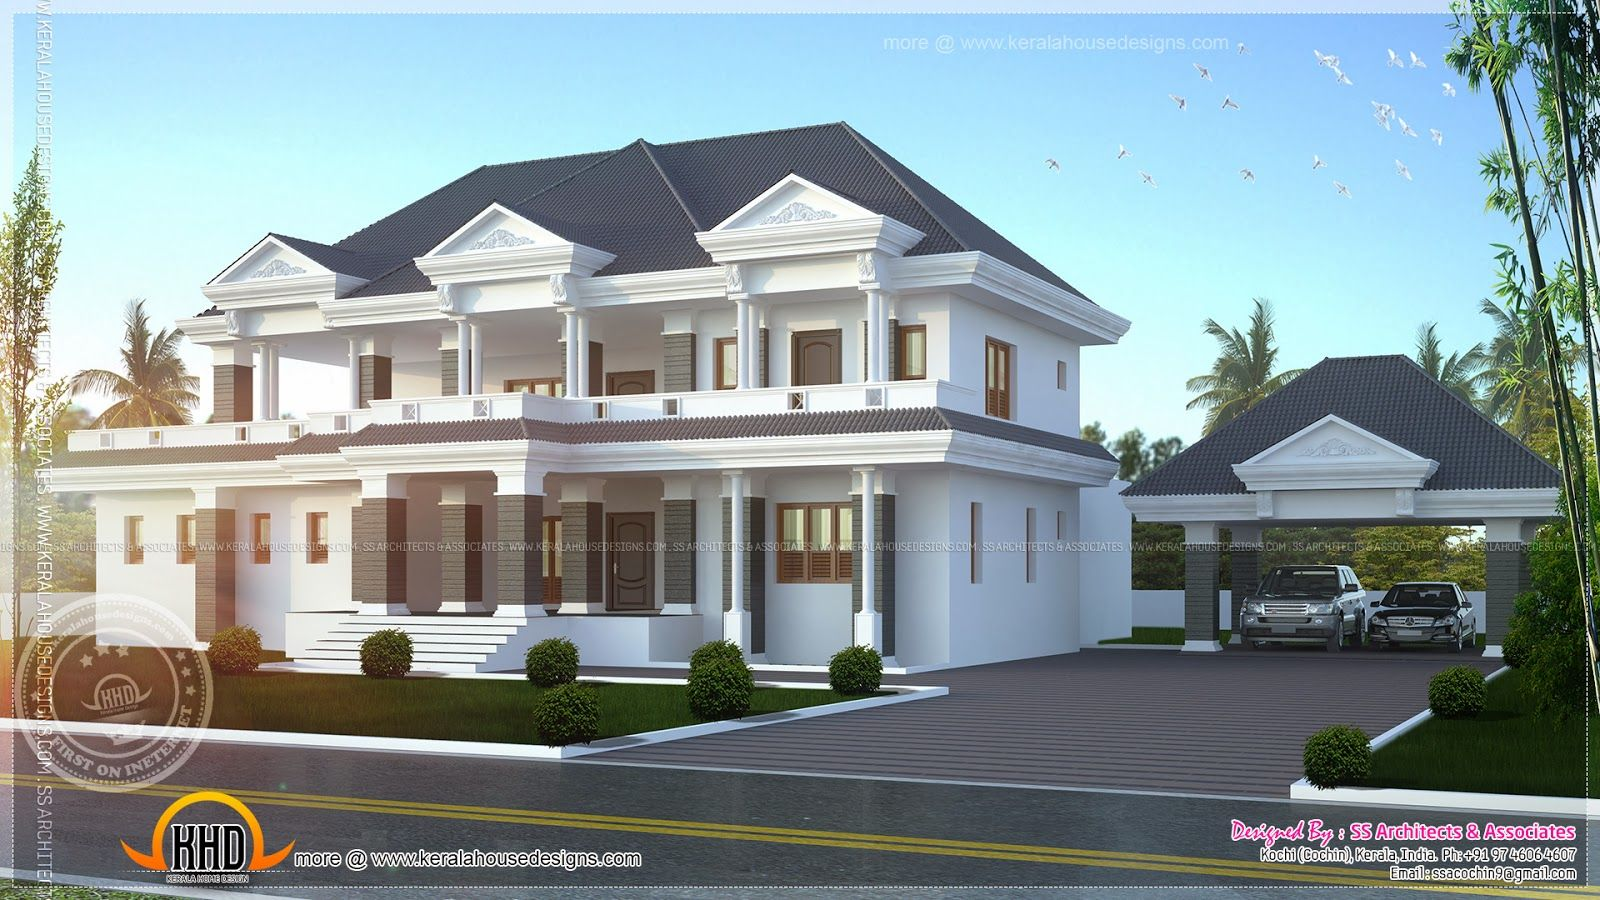 Luxury house plans posh luxury home plan audisb luxury Good homes design